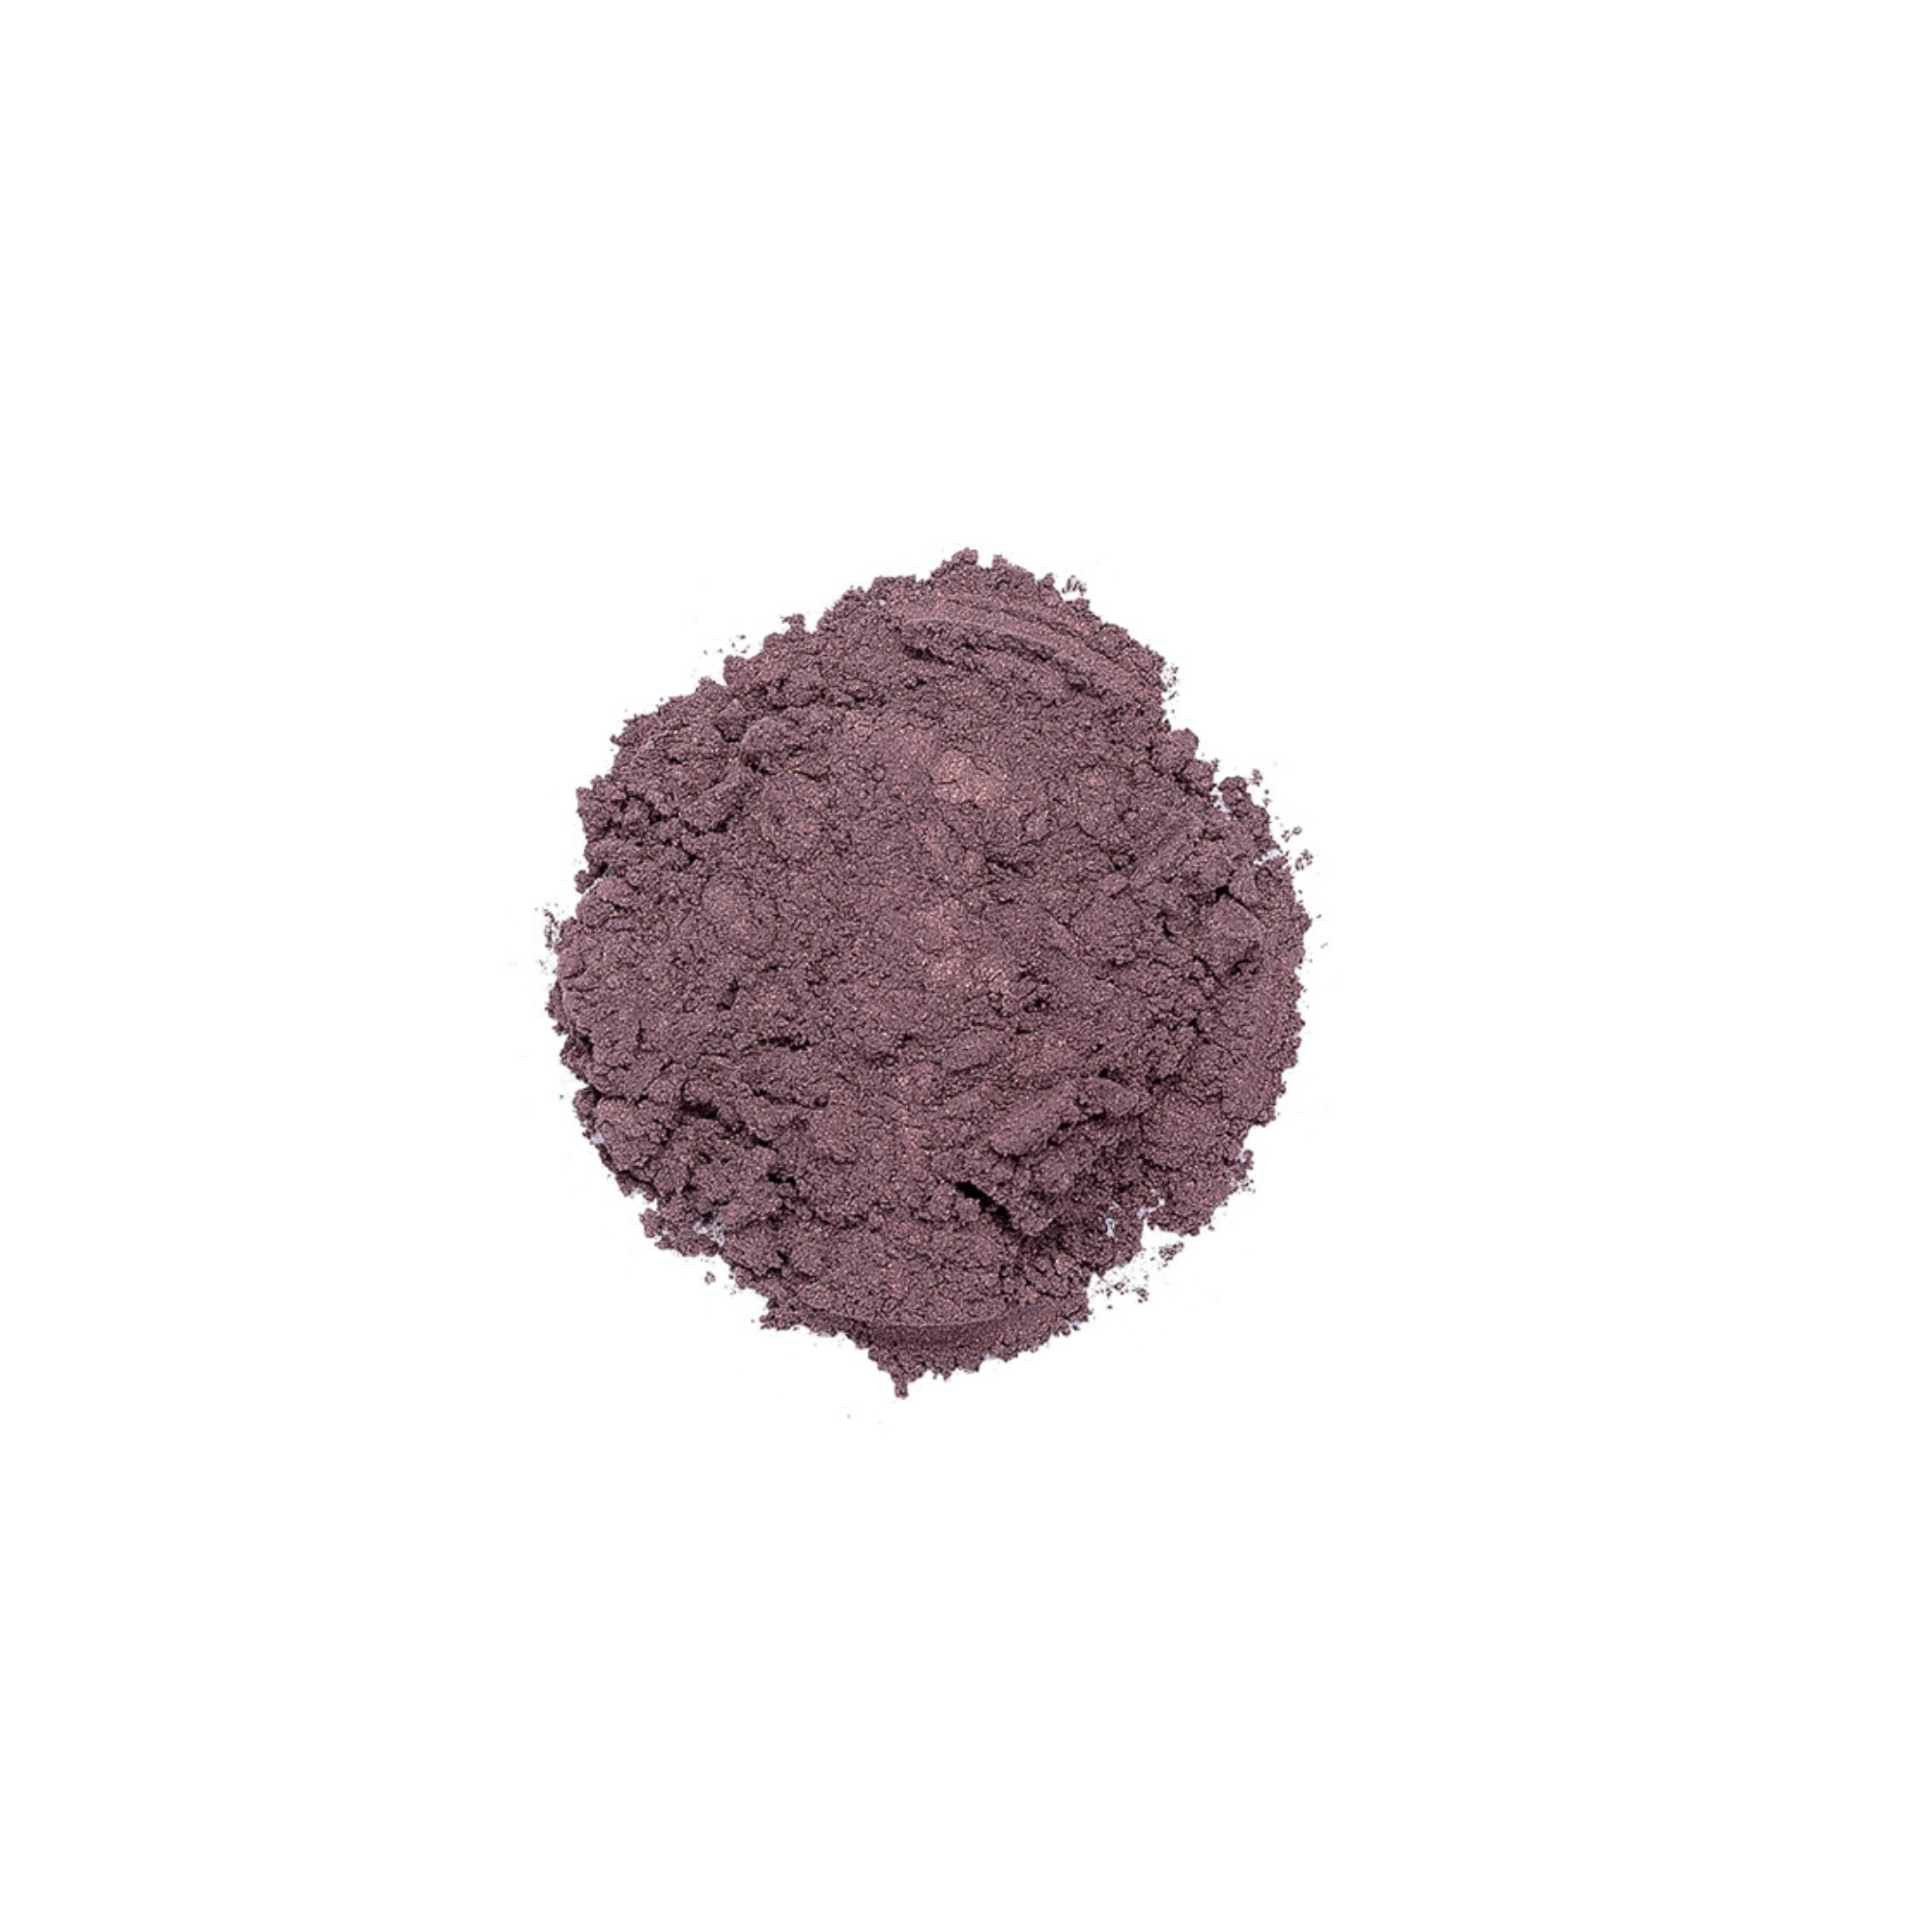 OVERBOARD EYESHADOW    This shade is a shimmery smokey plum color. Savvy Minerals eyeshadows are made with a finely ground mineral base, so they have a smooth, luxurious application and high-quality ingredients. They're formulated without fillers, synthetic fragrances, or parabens. Plus, its long-lasting formula leaves you with a gorgeous look you can wear all day.   Click here   to learn more about this product.